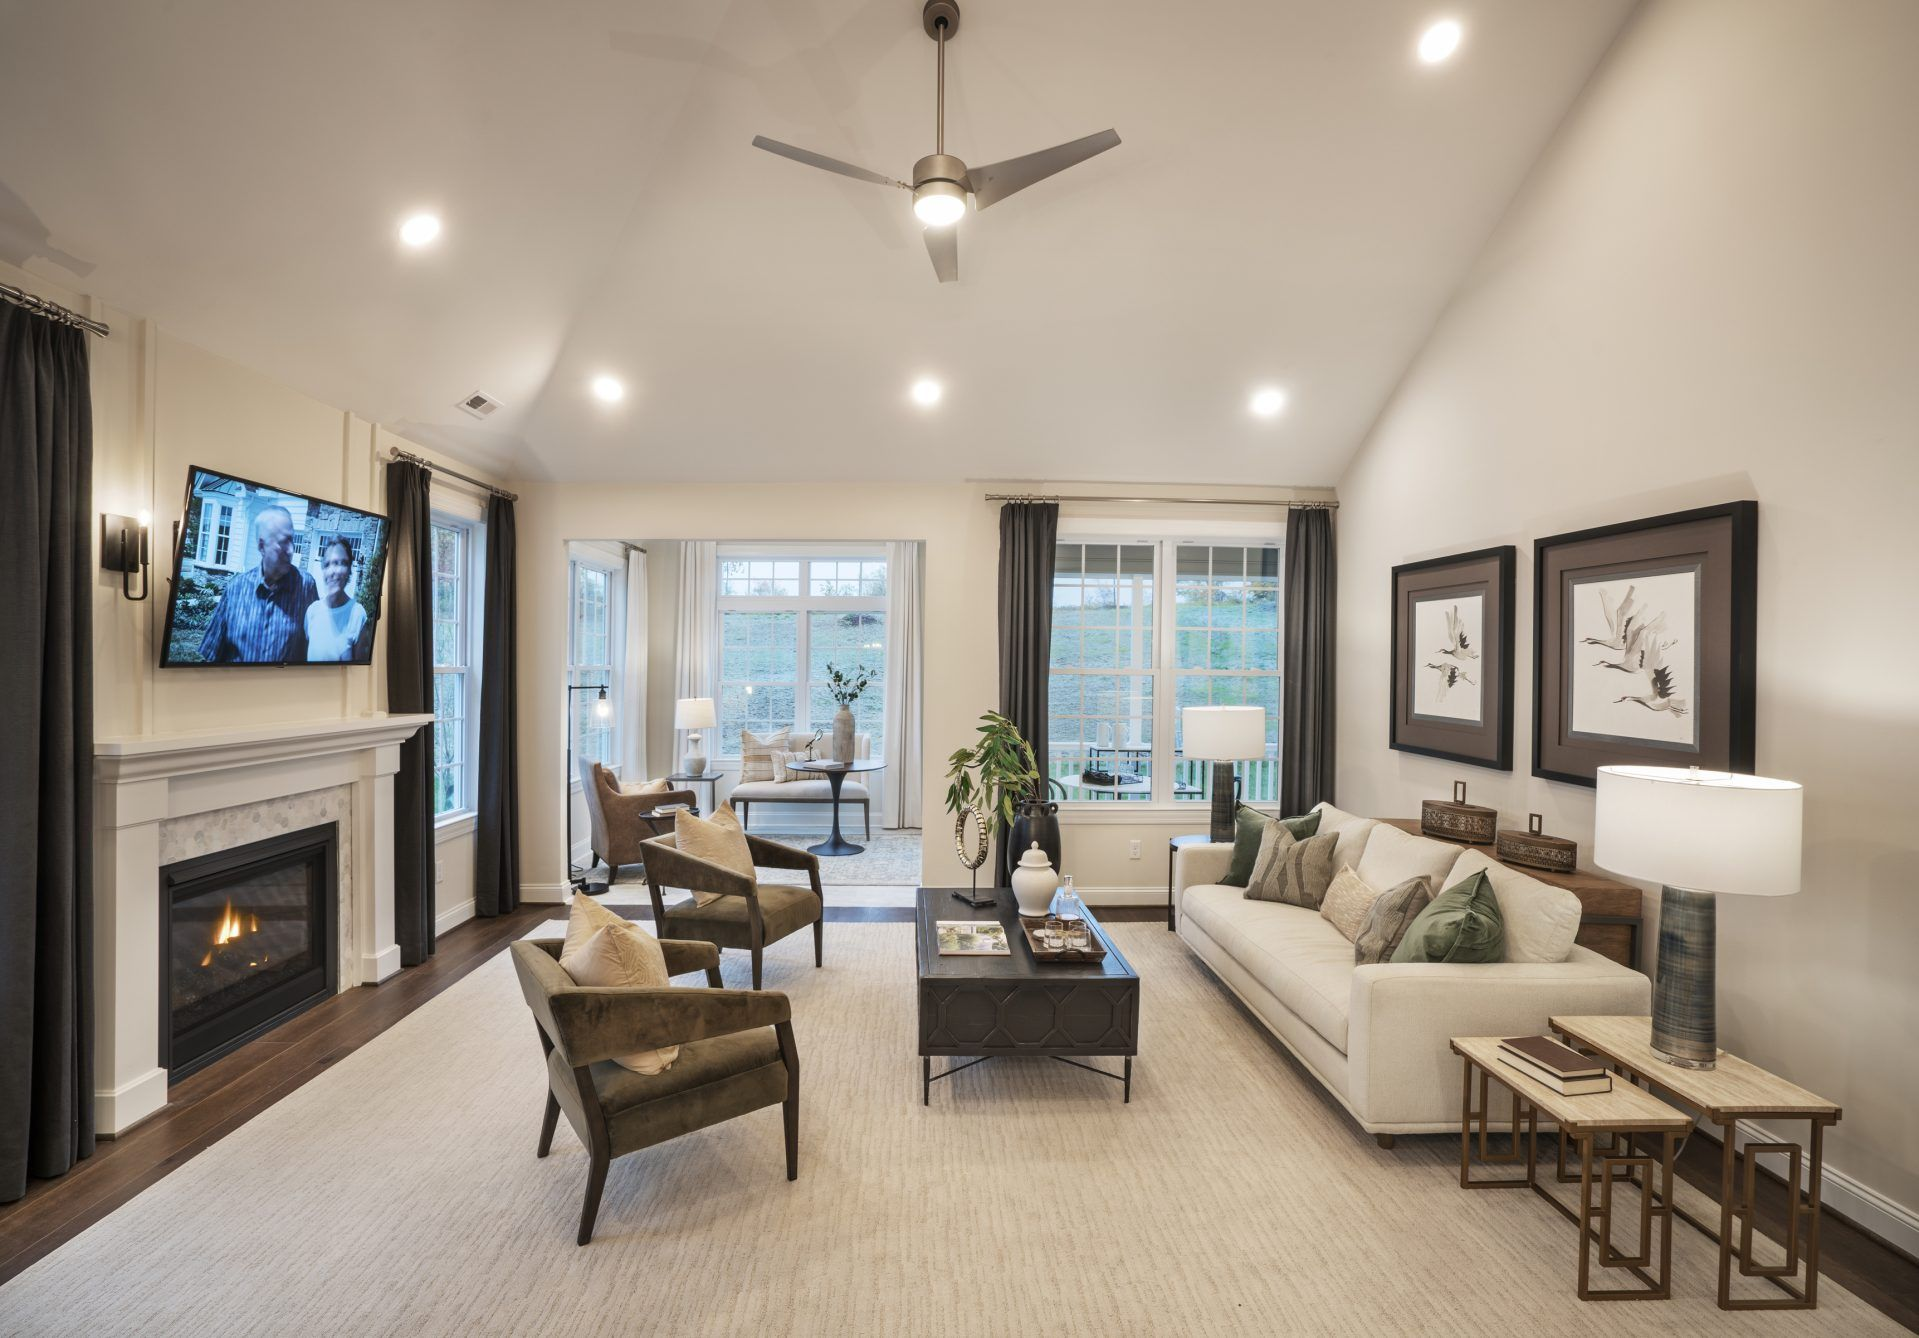 Living Area featured in The Adams By Traditions of America in Allentown-Bethlehem, PA